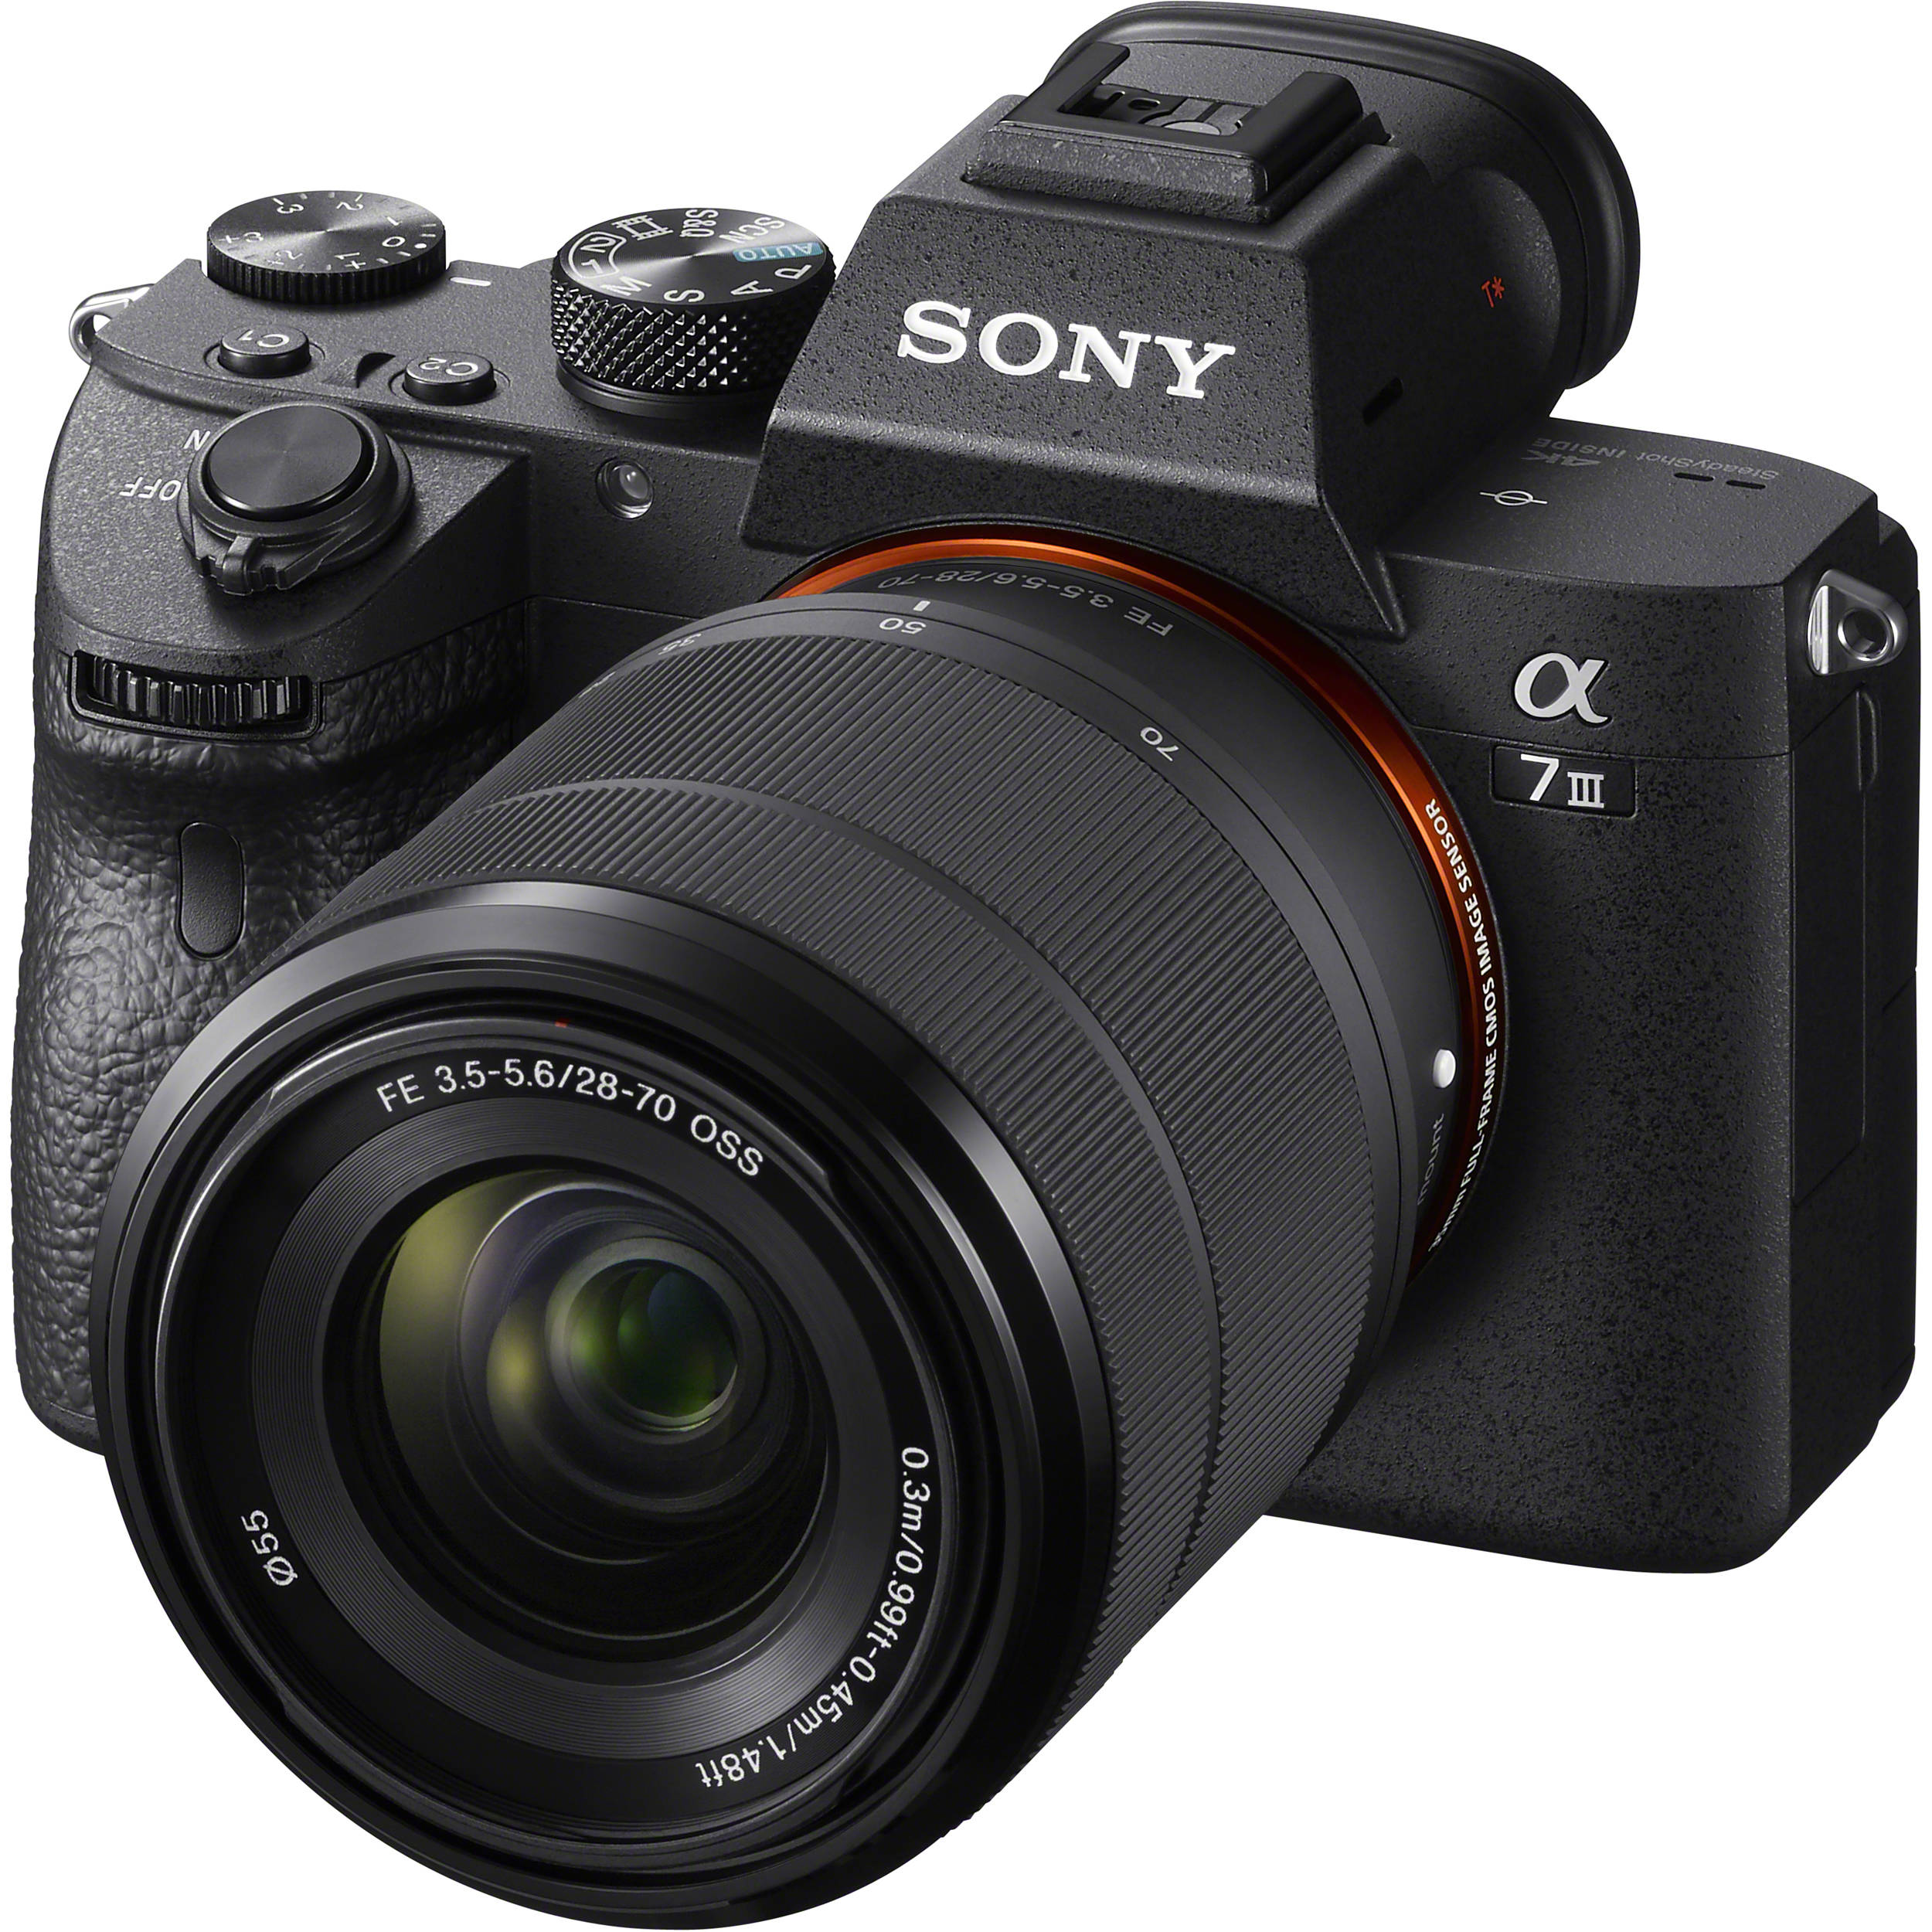 Sony Alpha a7 III Mirrorless Digital Camera with 28.